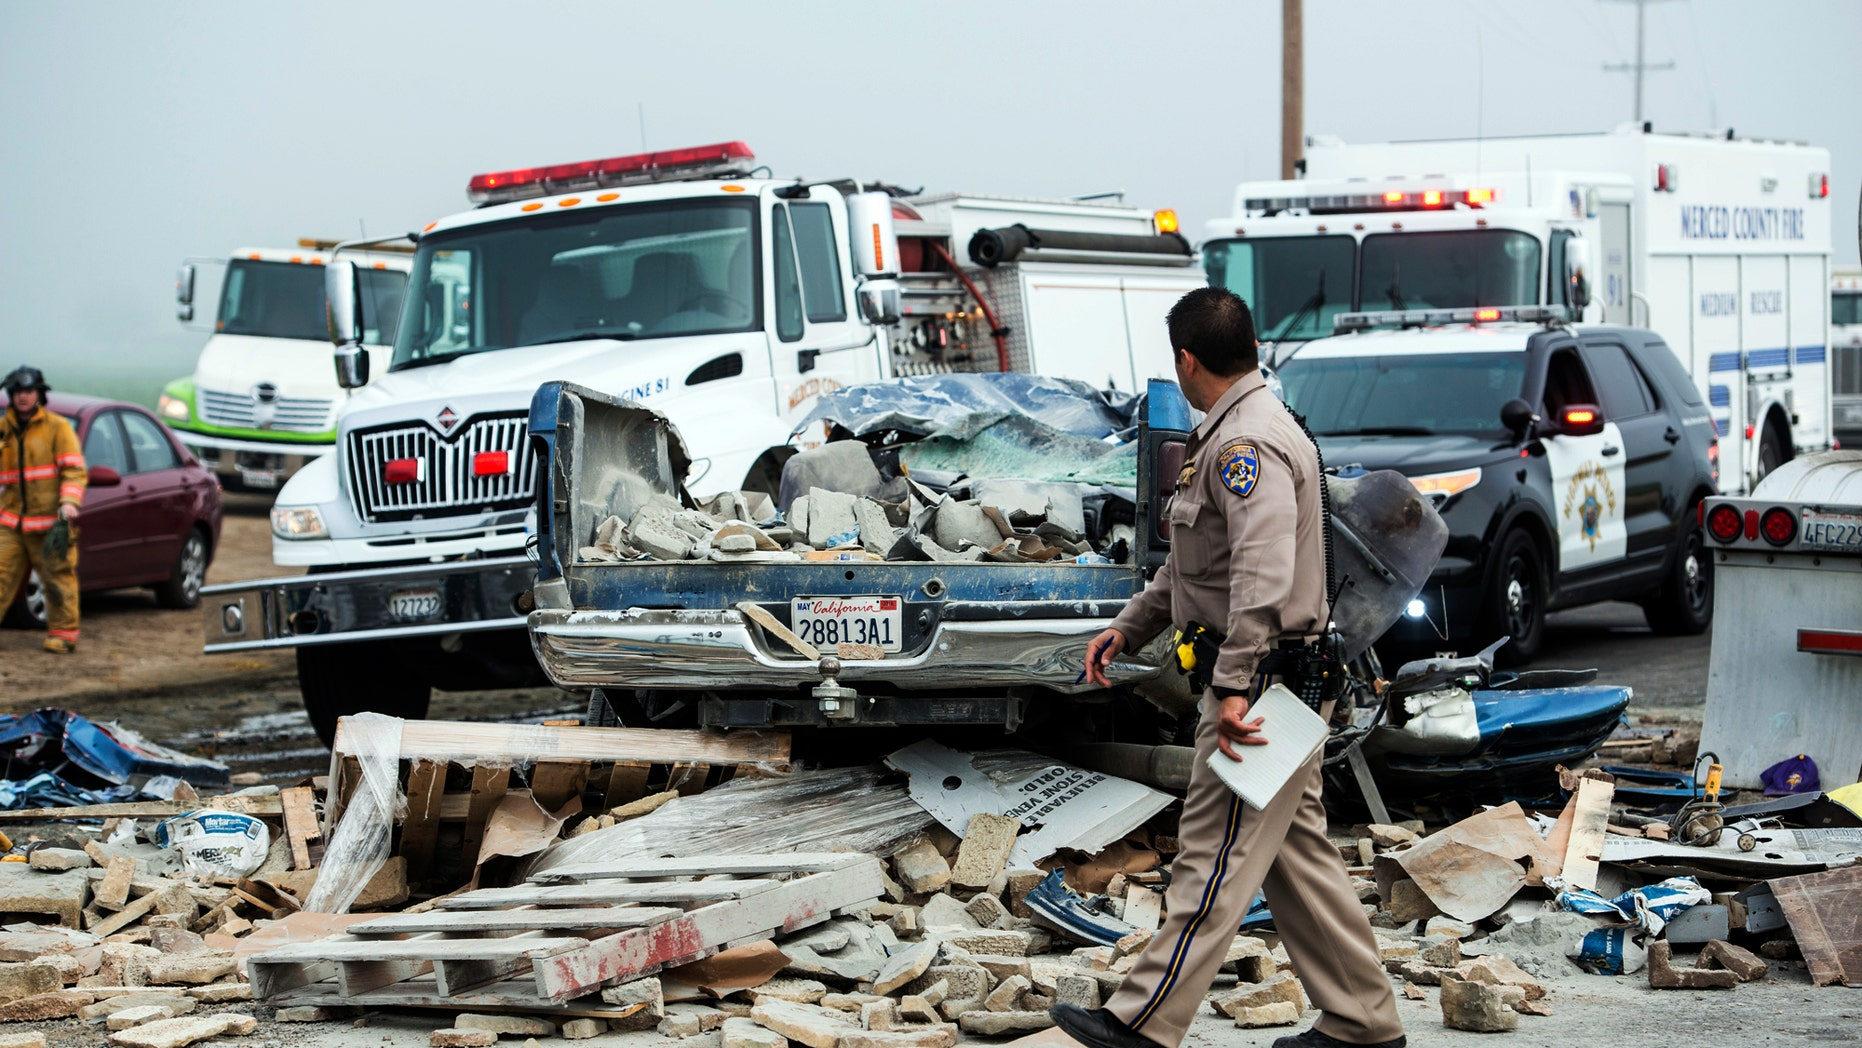 Emergency personnel work at the scene of a crash, one of several separate collisions, on Highway 59 in Merced County, Calif., Saturday, Feb. 13, 2016. The CHP says there was fog on the highway around the time of the crashes, but the cause remains under investigation. (Andrew Kuhn/Merced Sun-Star via AP)